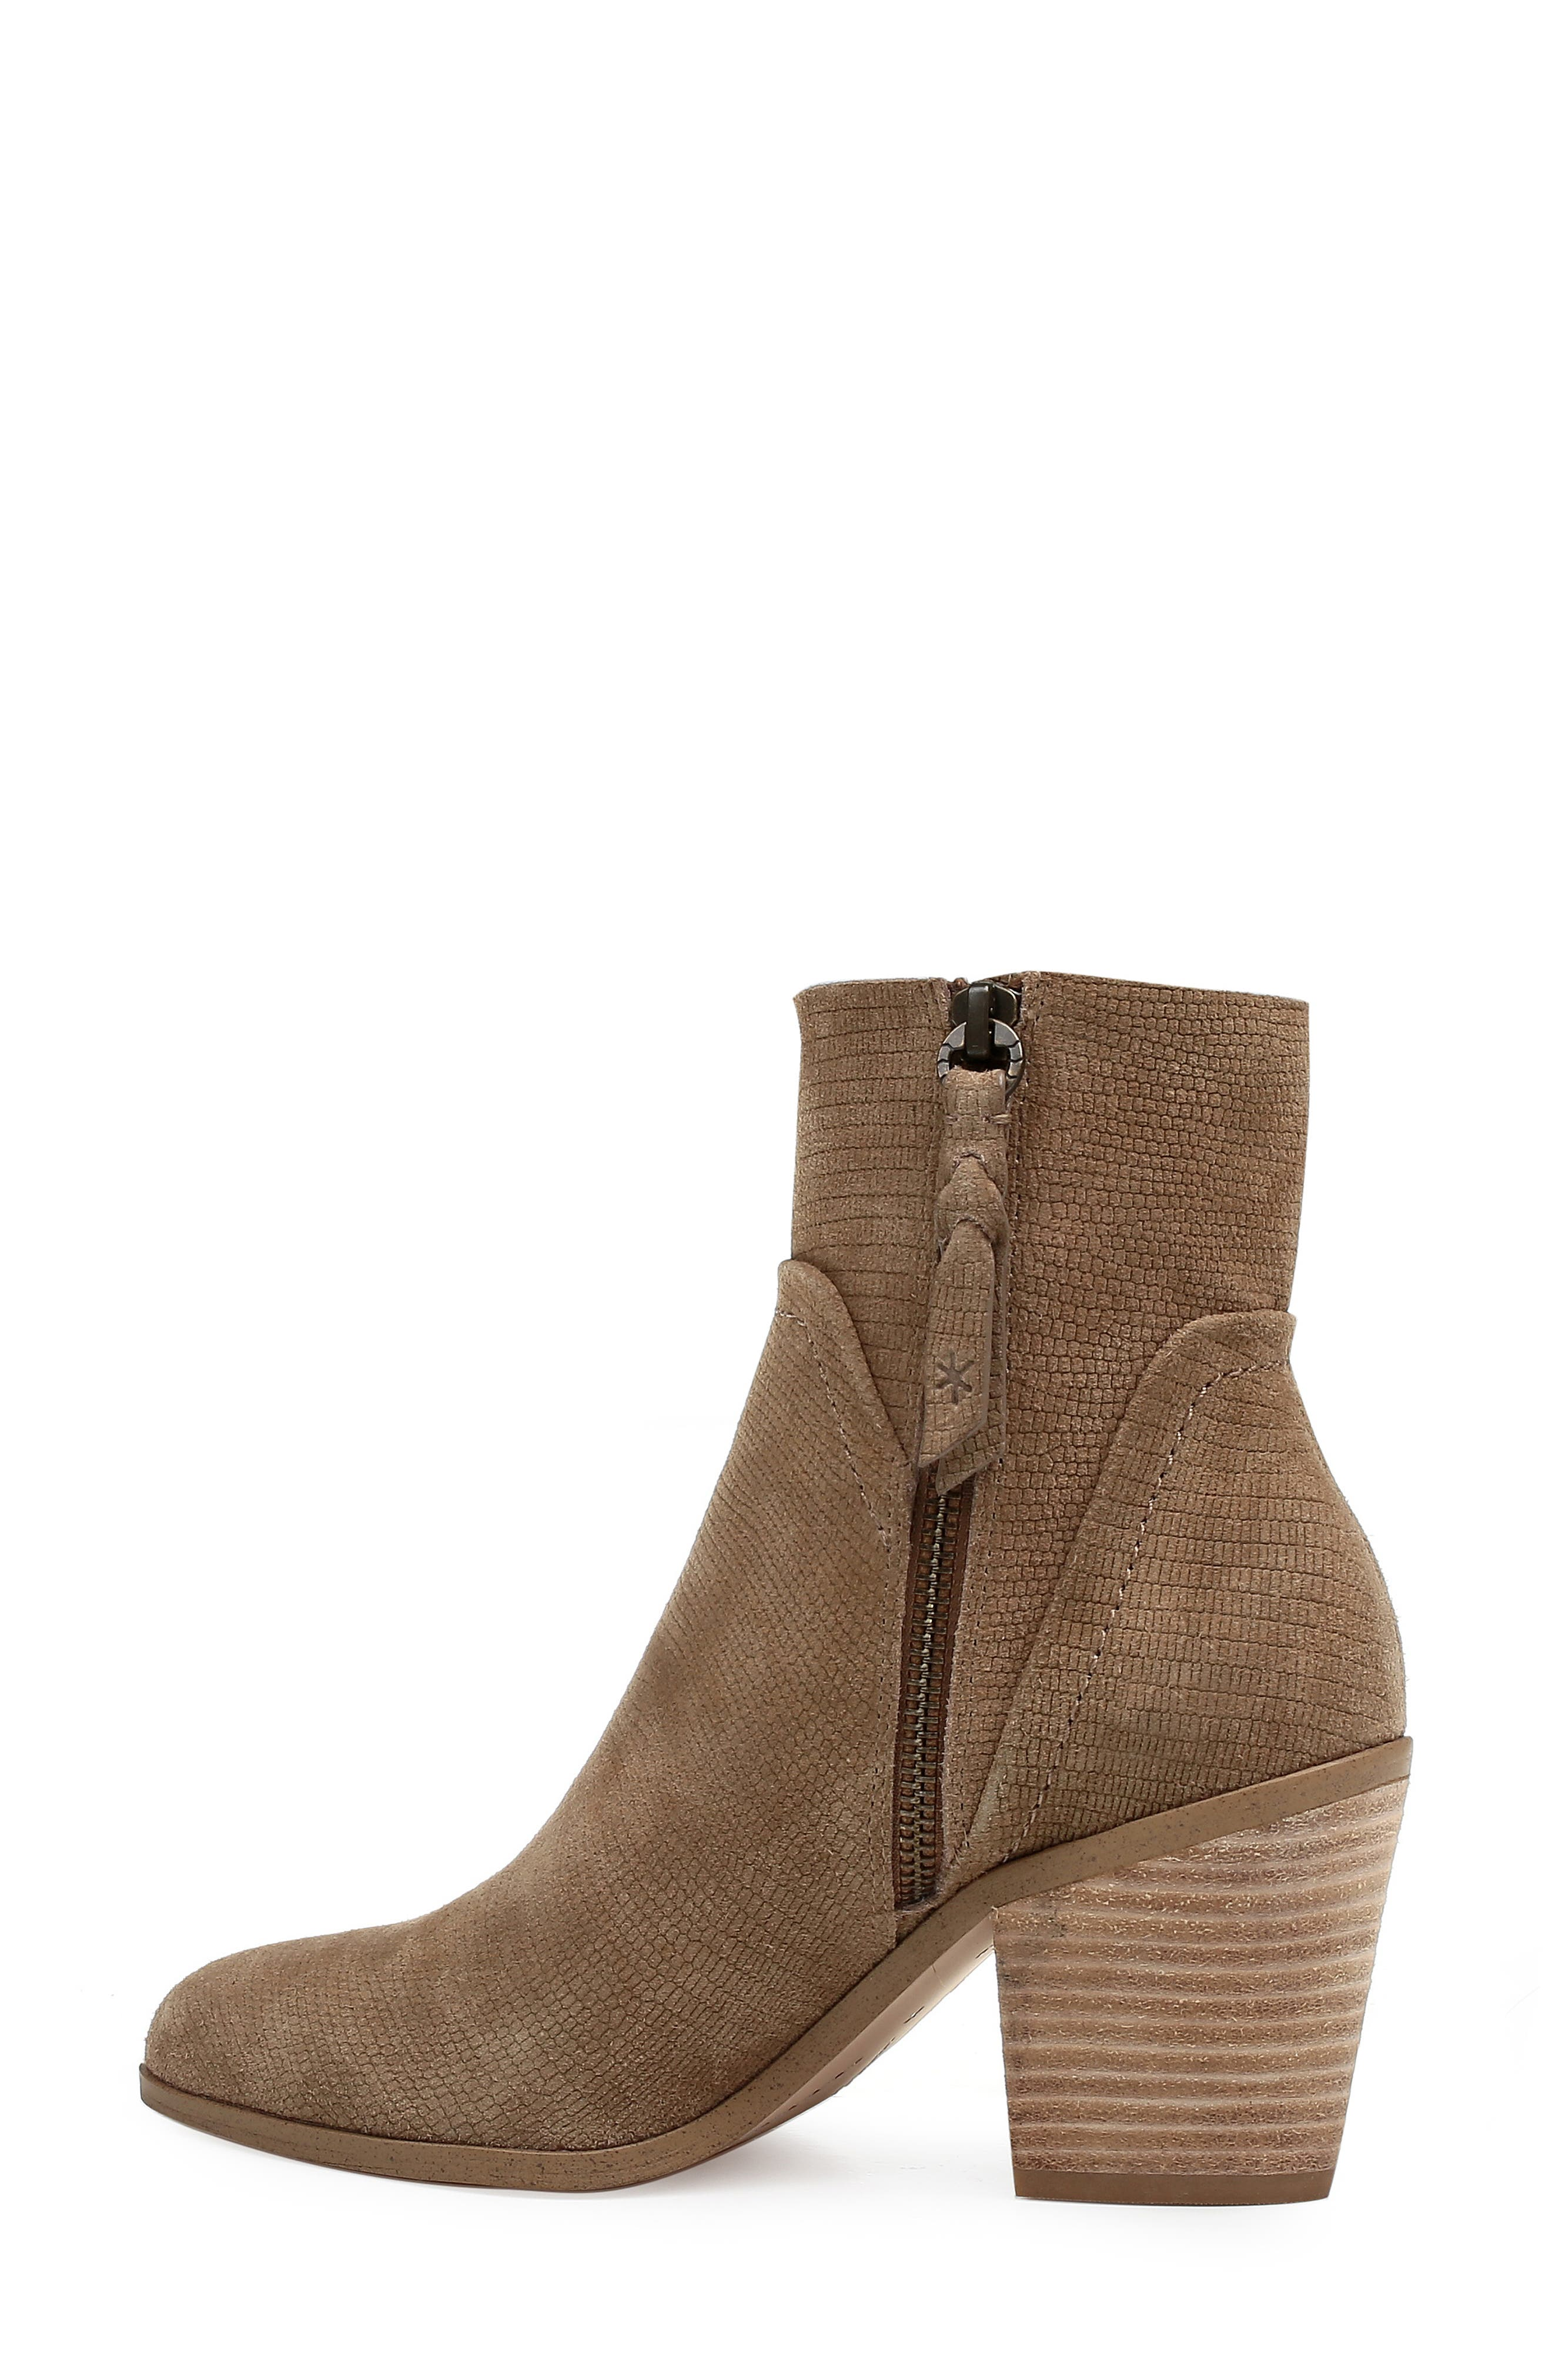 Cherie Bootie,                             Alternate thumbnail 2, color,                             OAT EMBOSSED SUEDE